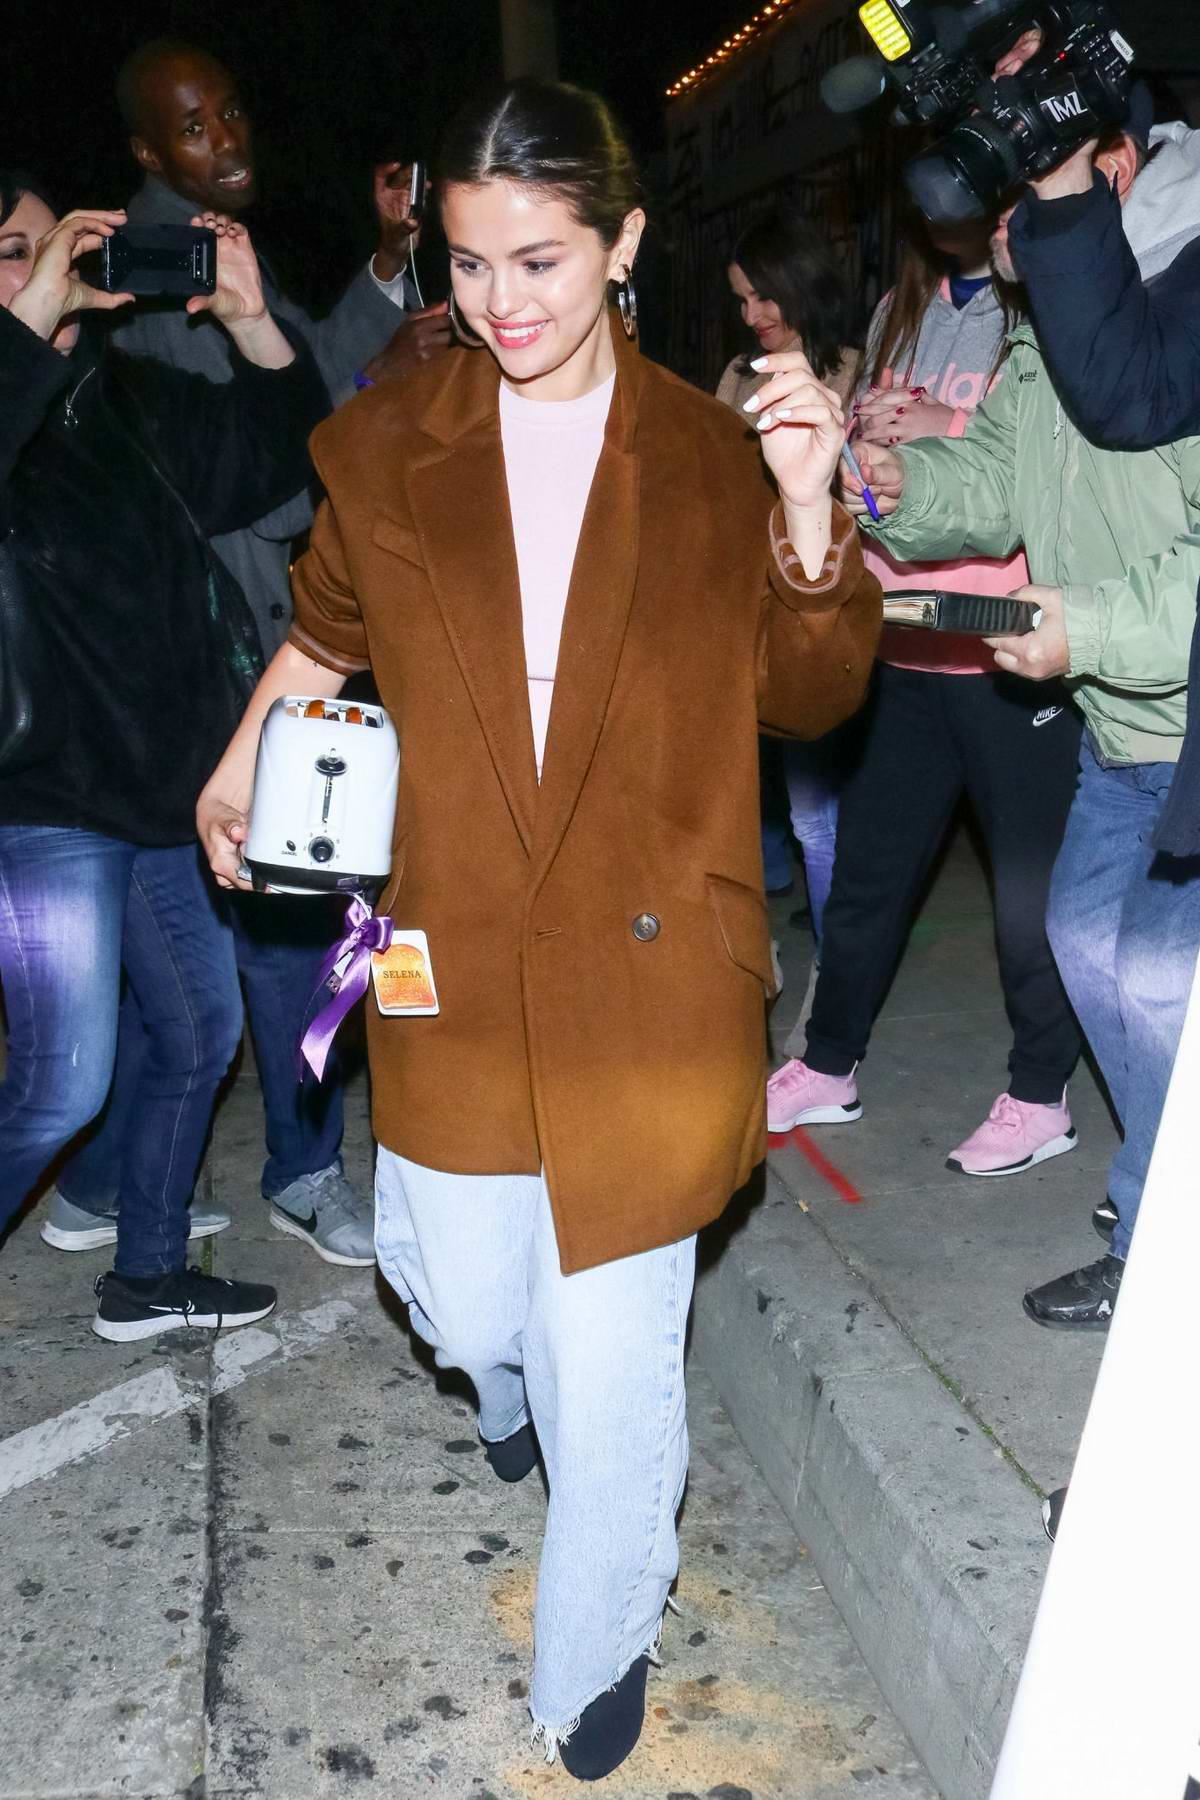 Selena Gomez is all smiles as she leaves Craig's in West Hollywood, California